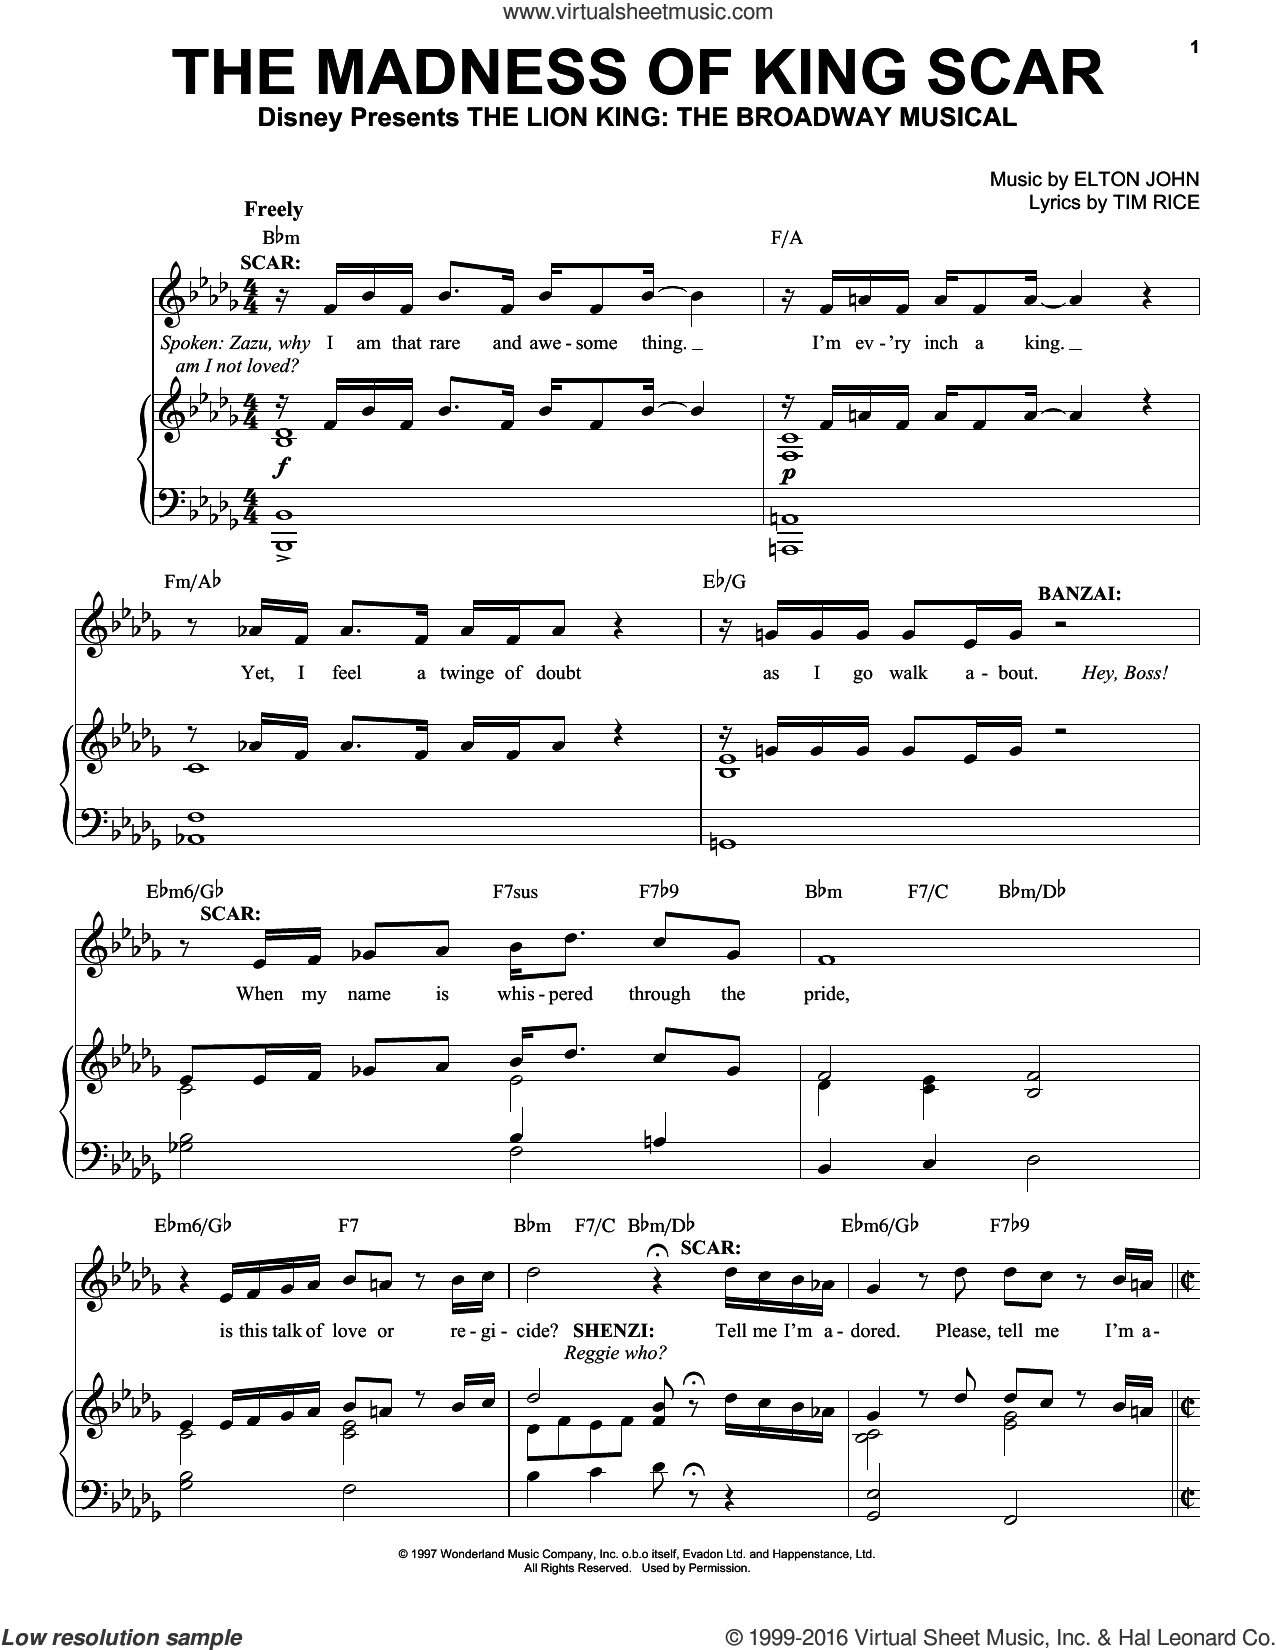 The Madness Of King Scar sheet music for voice, piano or guitar by Elton John and Tim Rice. Score Image Preview.